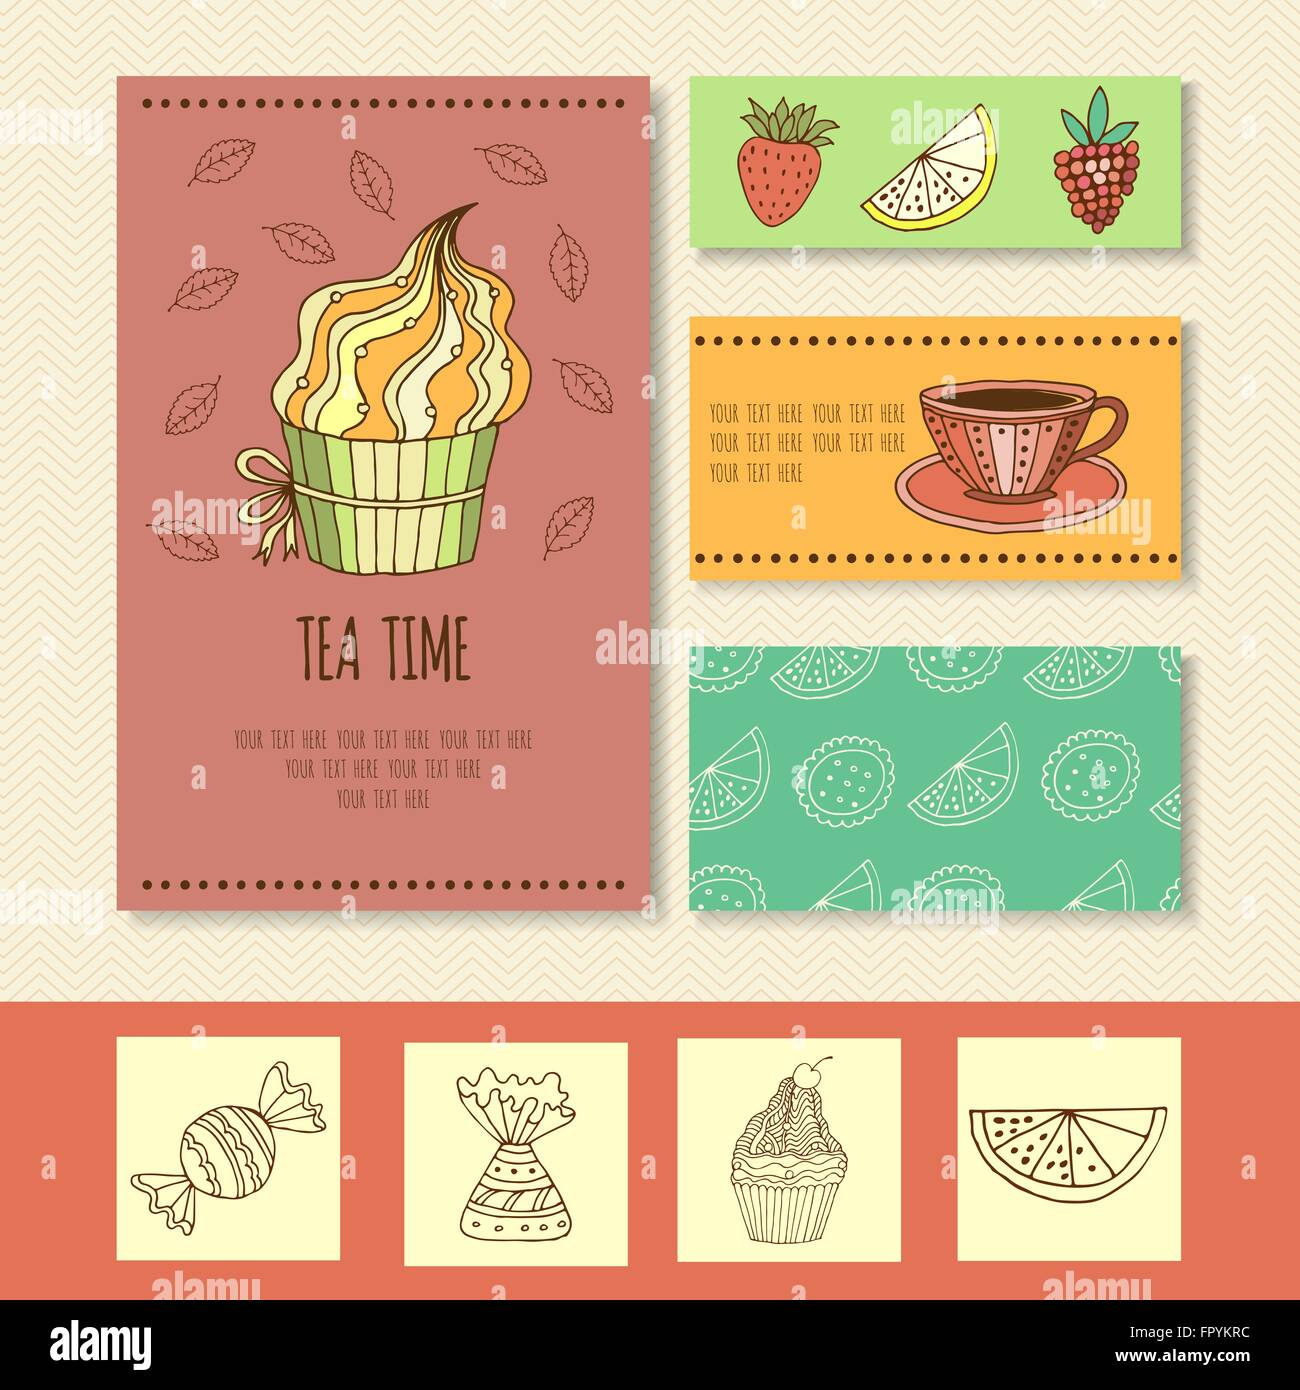 Invitation Card For Mad Tea Party Or Cute Funny Business Card For